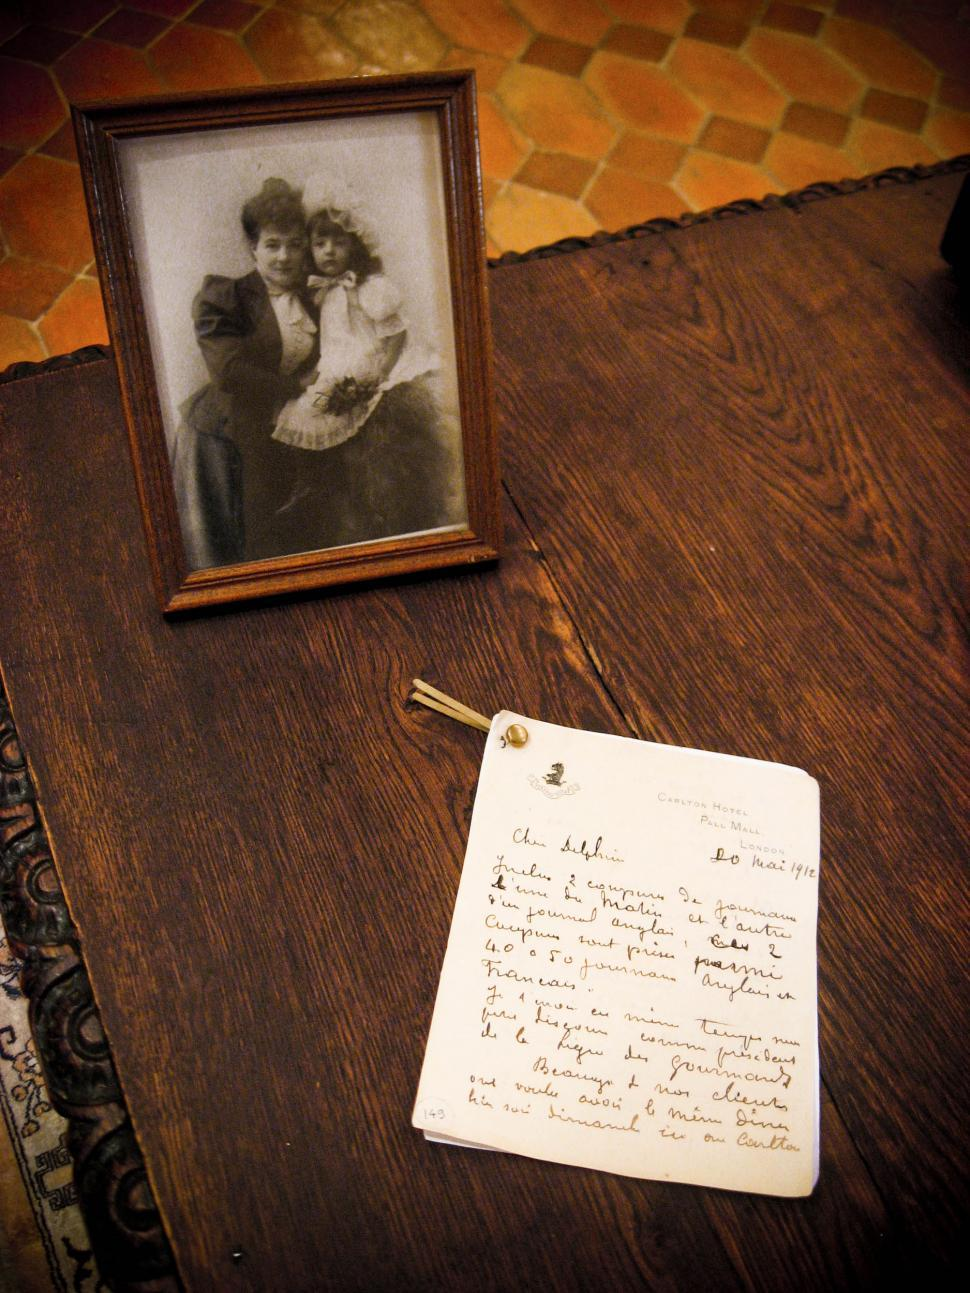 Download Free Stock Photo of old photograph and letter